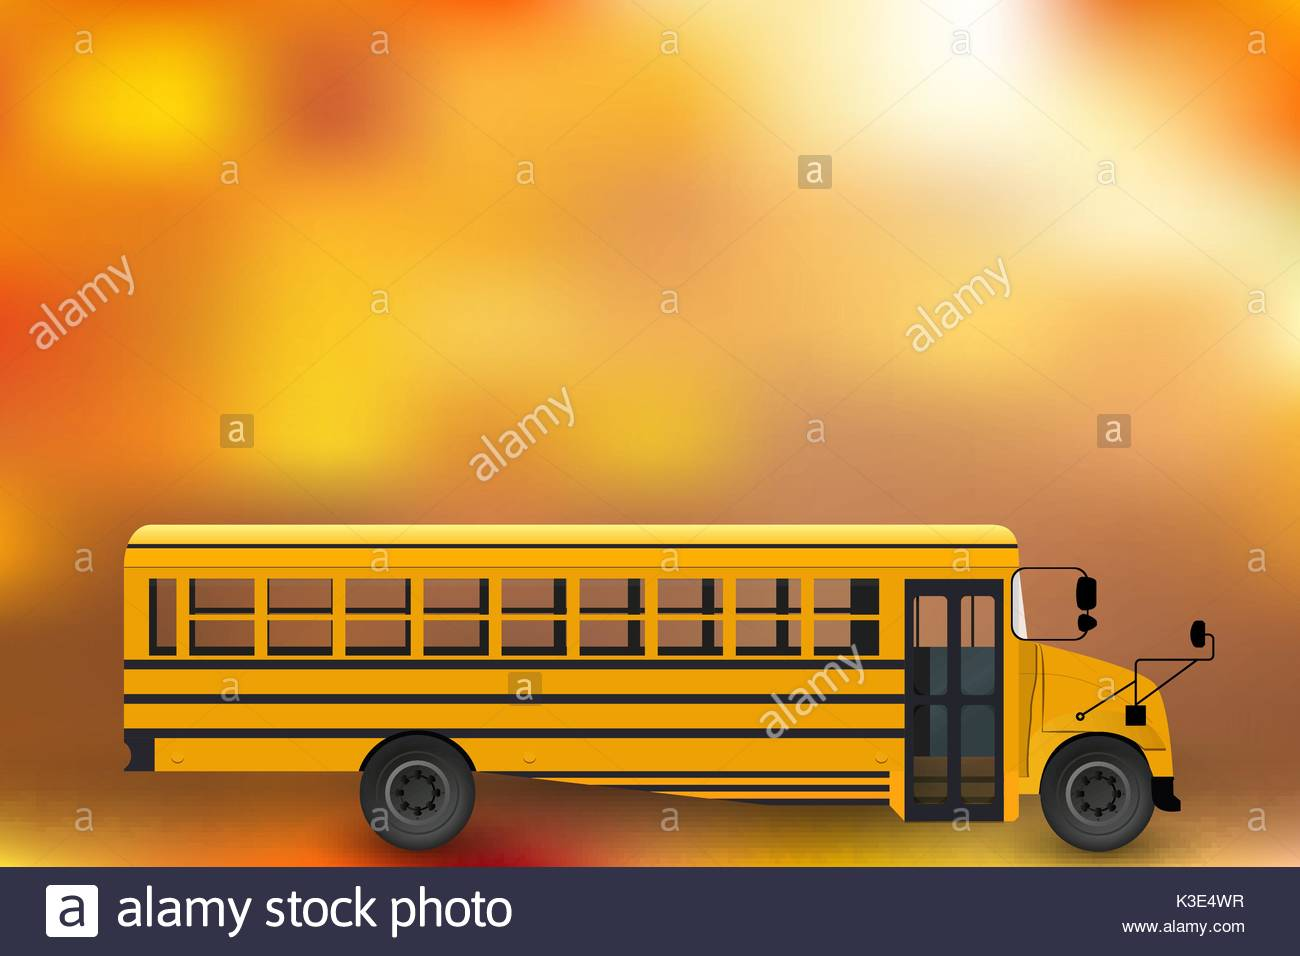 school bus vector drawing with background composition - Stock Image